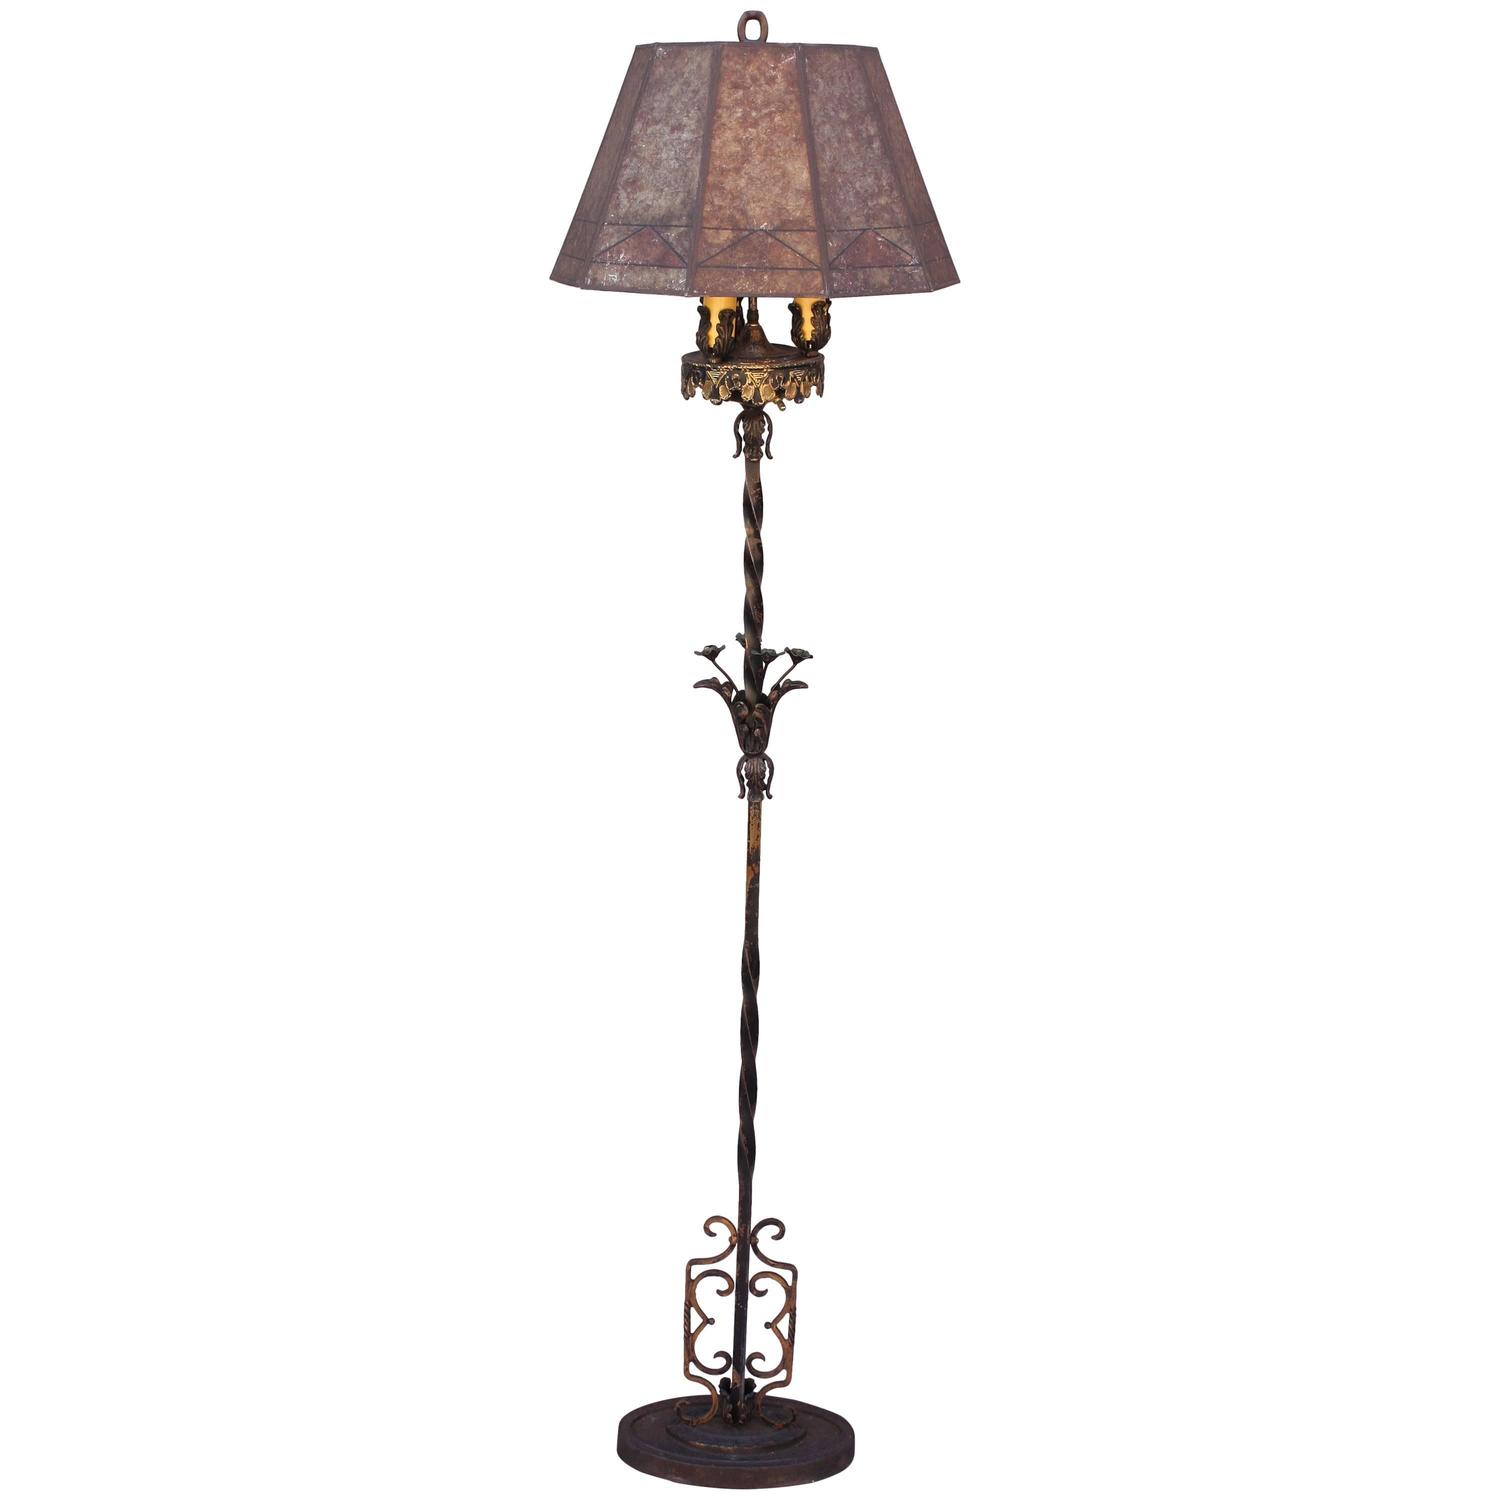 1920s spanish revival floor lamp for sale at 1stdibs for 1920 floor lamp